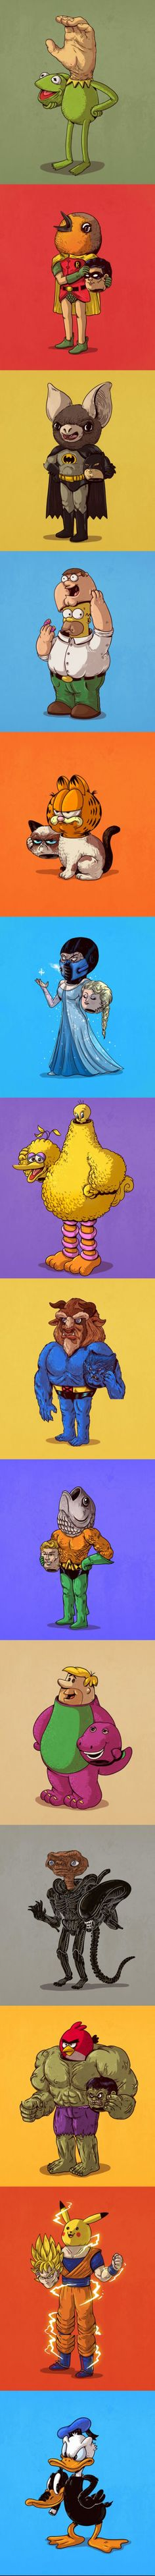 Iconic Characters Unmasked (By Alex Solis) Iconic Characters, Geek Culture, Funny Comics, Funny Cartoons, Stupid Funny Memes, Funny Art, Cartoon Art, Best Funny Pictures, Amazing Art